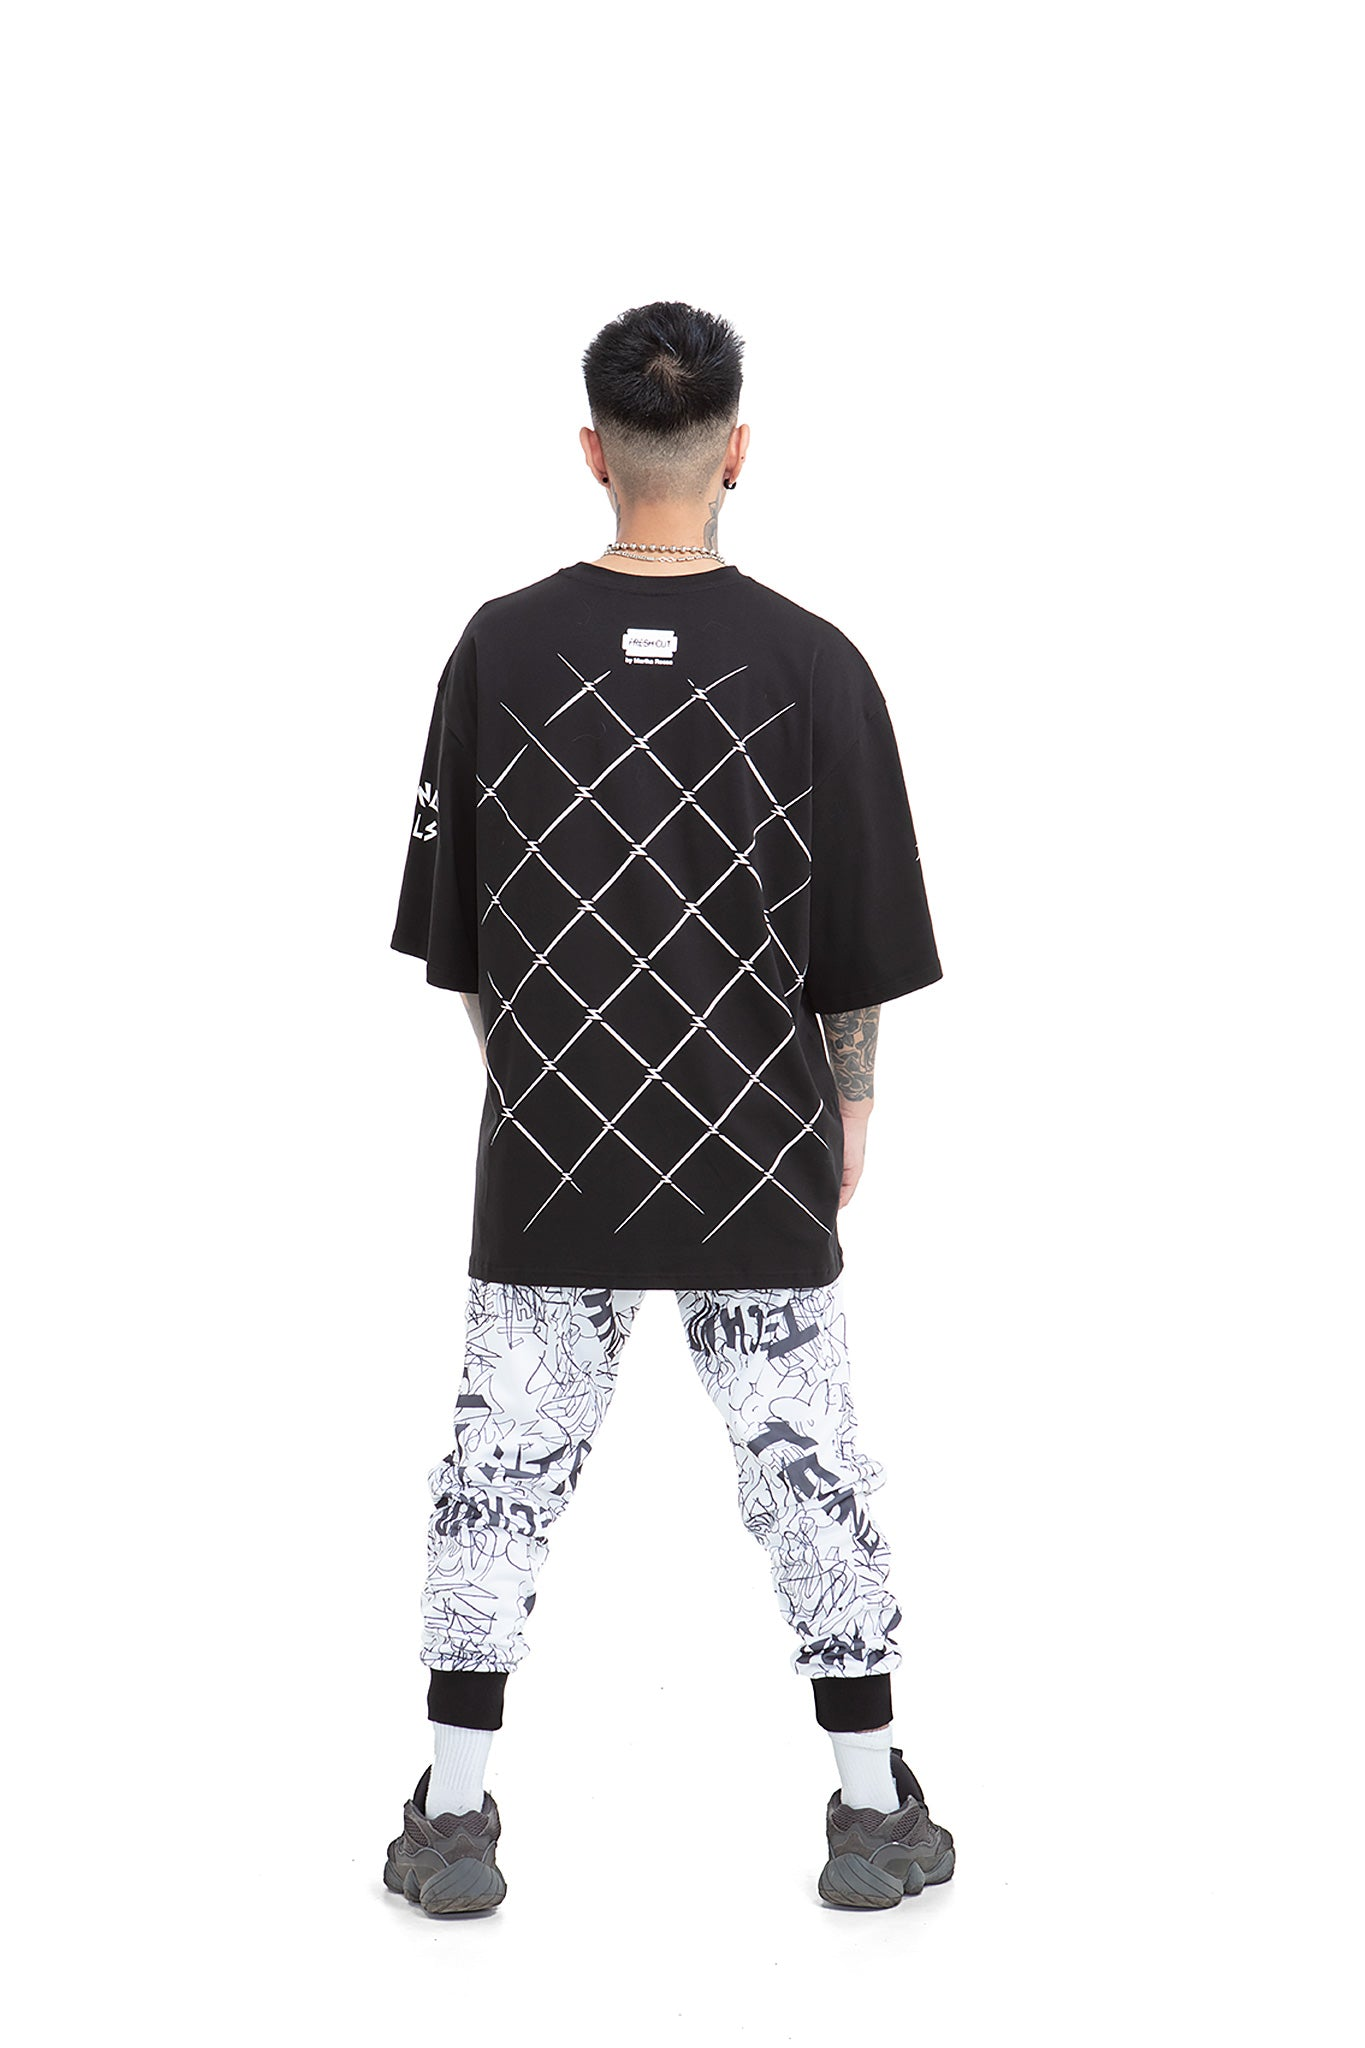 Techno Rebels Oversized Unisex T-shirt